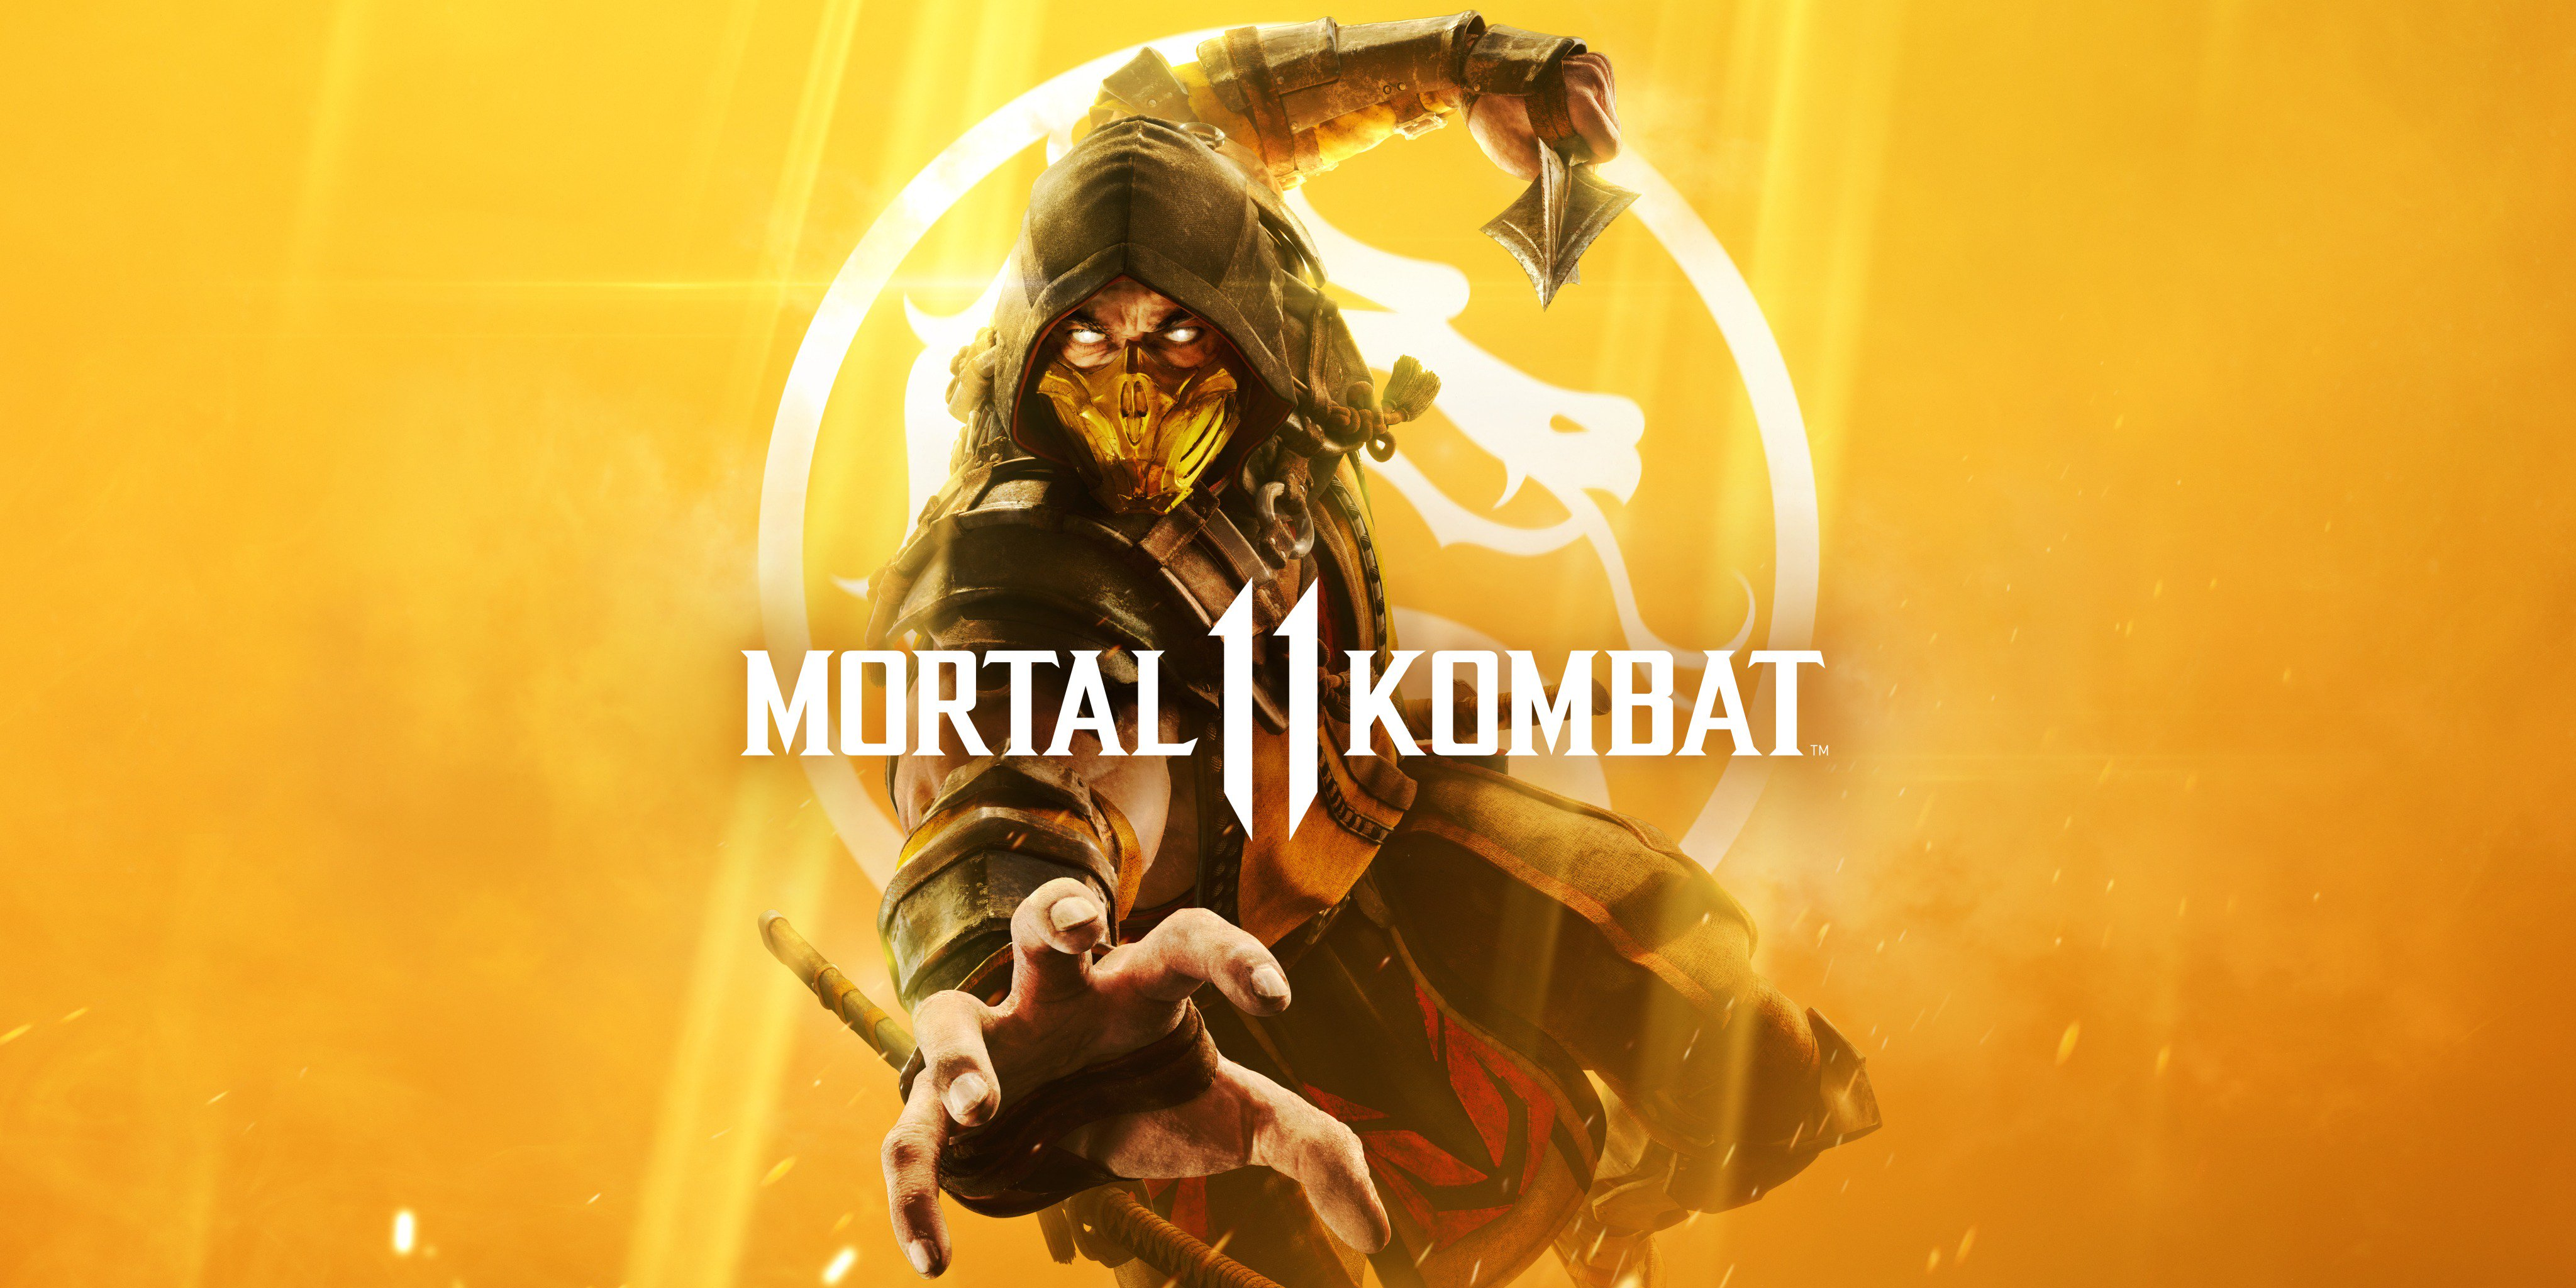 General 4096x2048 Mortal Kombat Scorpion (character) Mortal Kombat 11 Video Game Warriors video game art video games